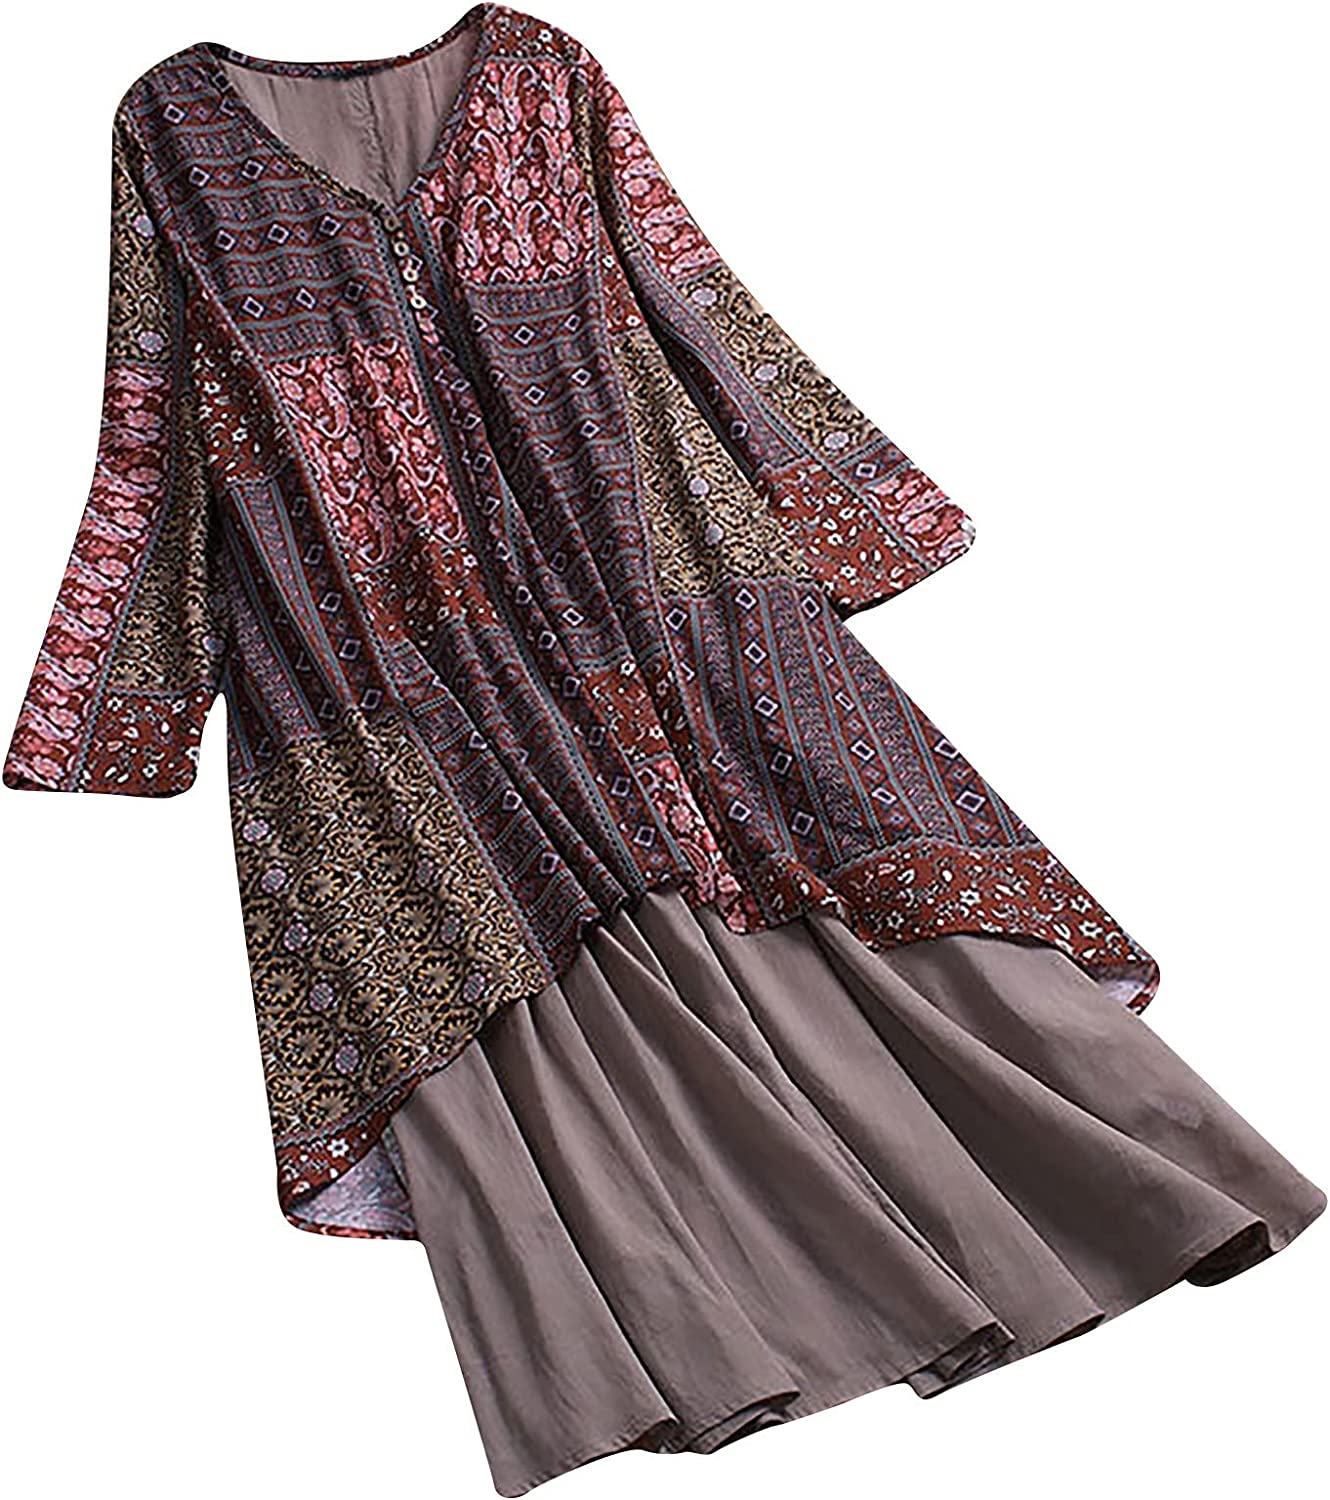 Assletes Plus Size Women Cotton and Linen V-Neck Long Sleeve Floral Printed Button Casual Dress